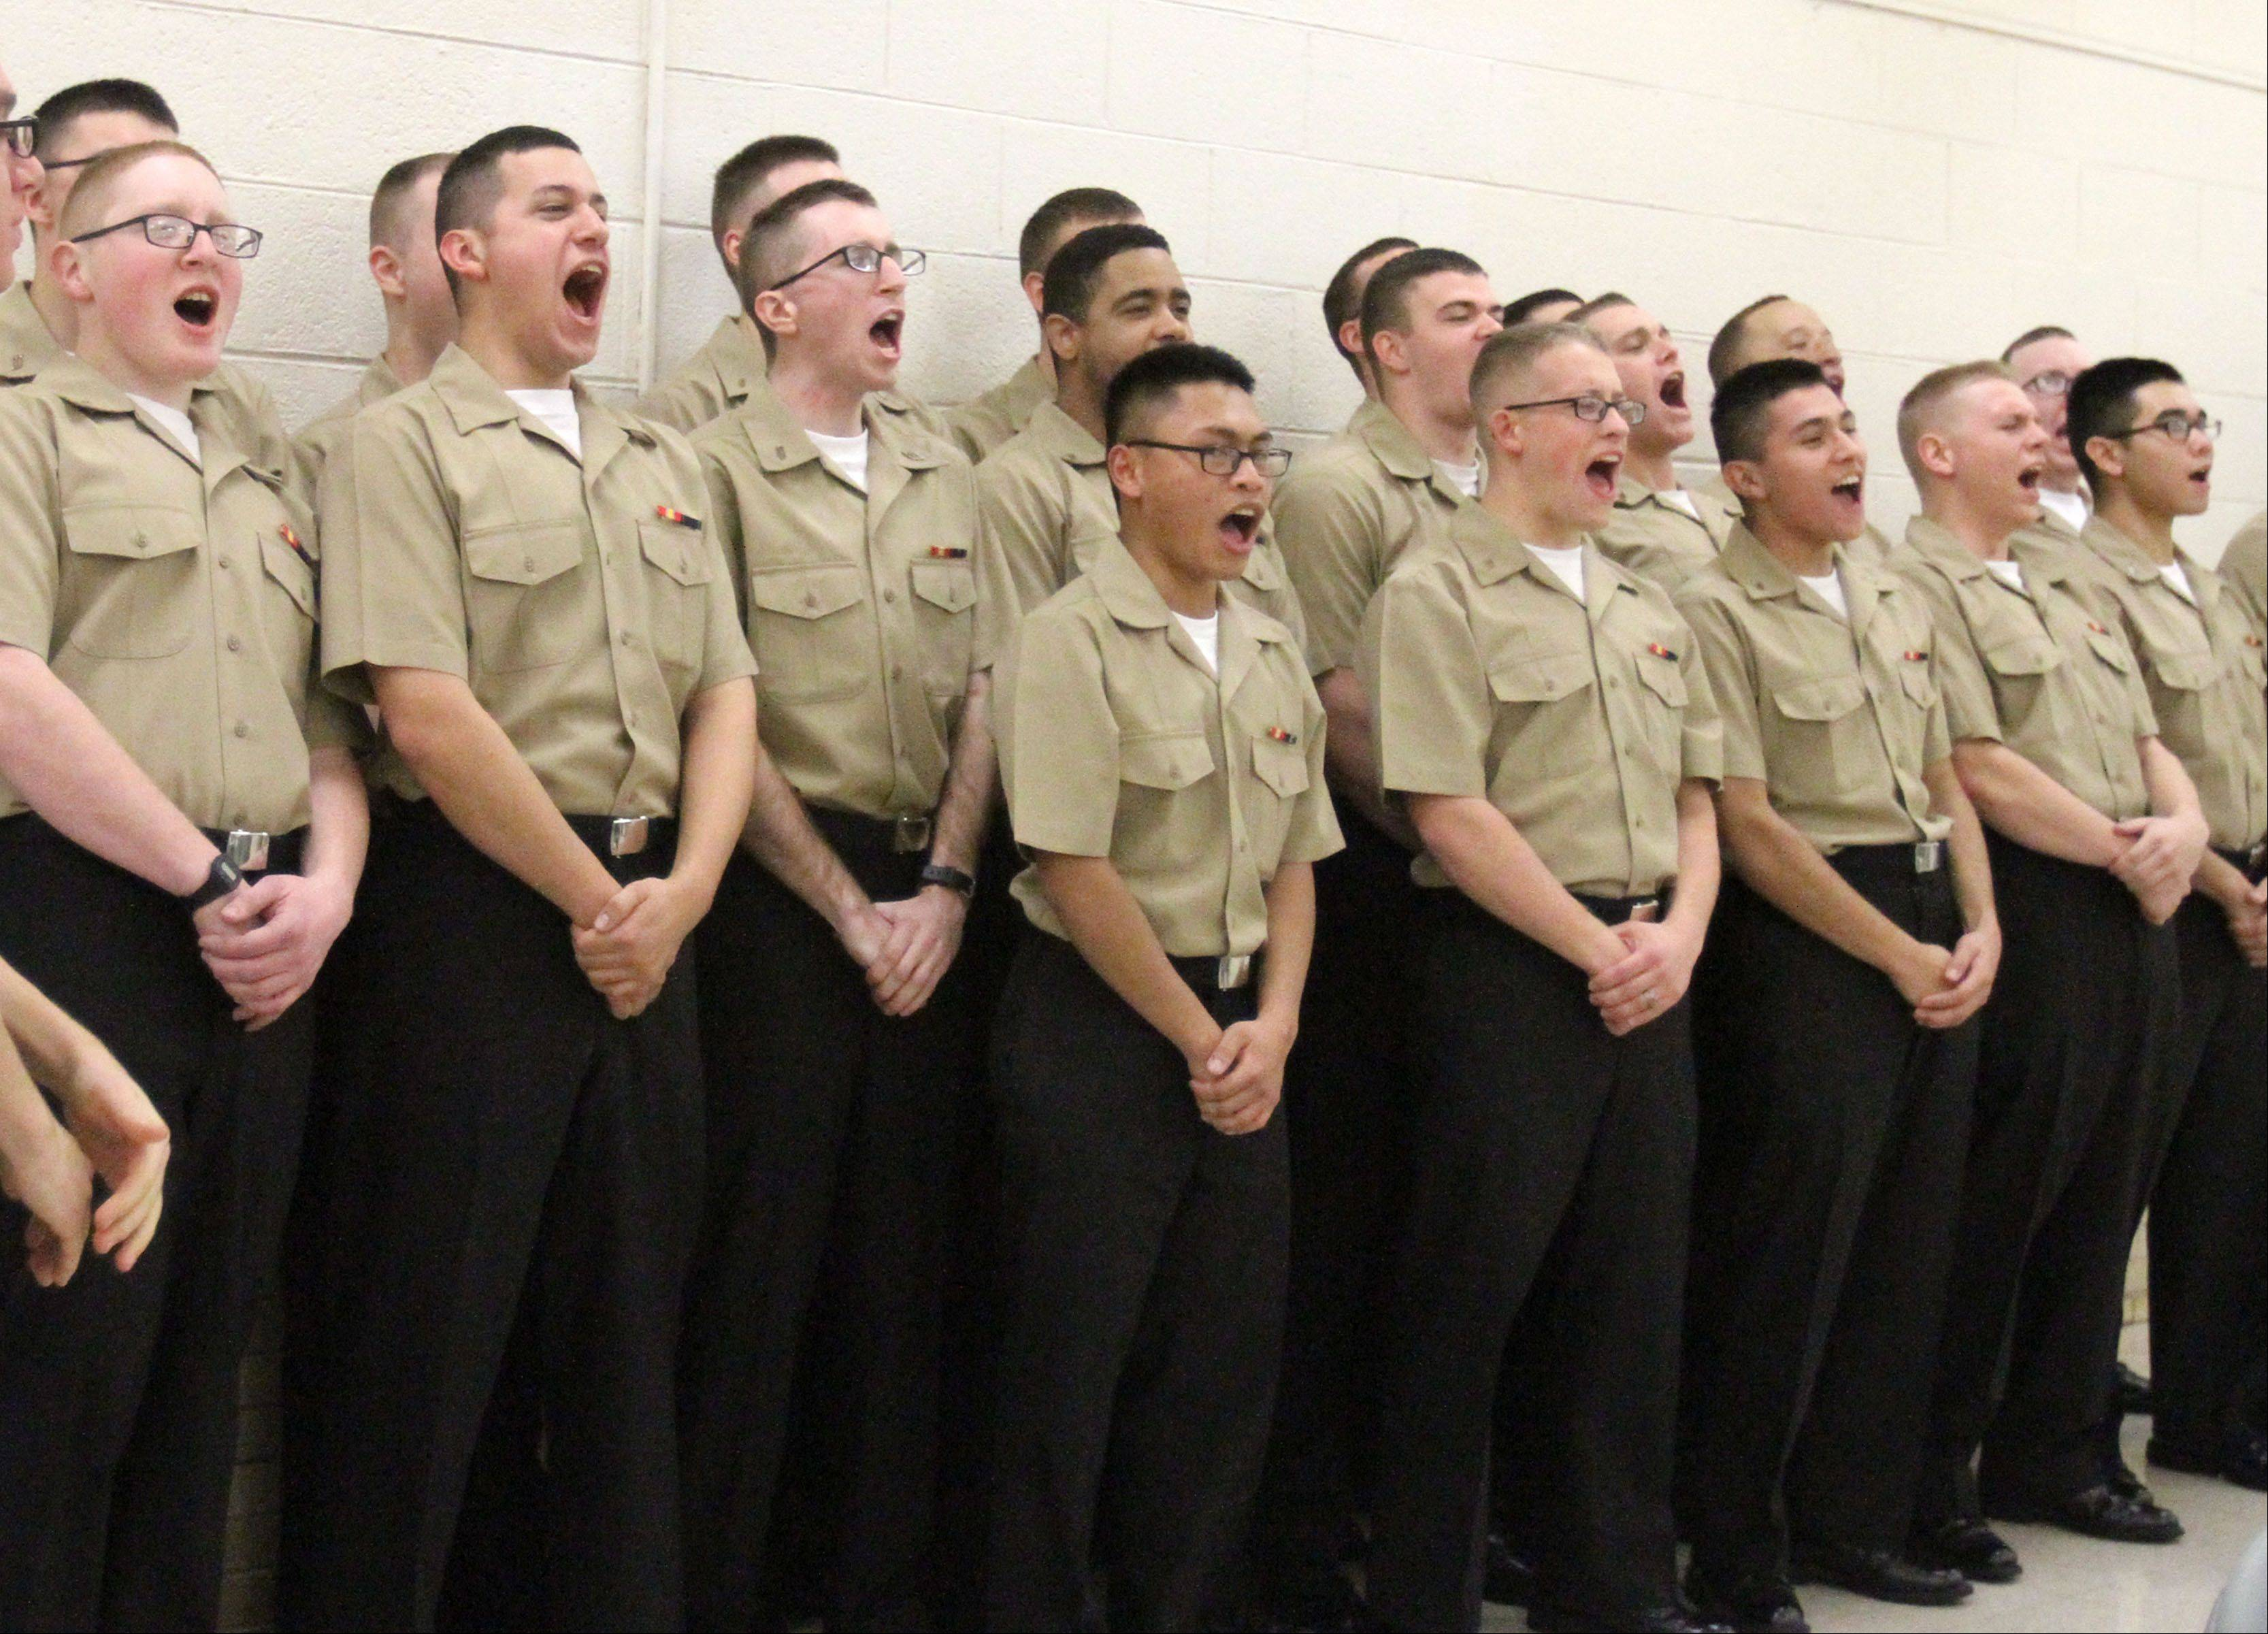 U.S. Navy recruits give a shoutout to Christian Liberty Academy.